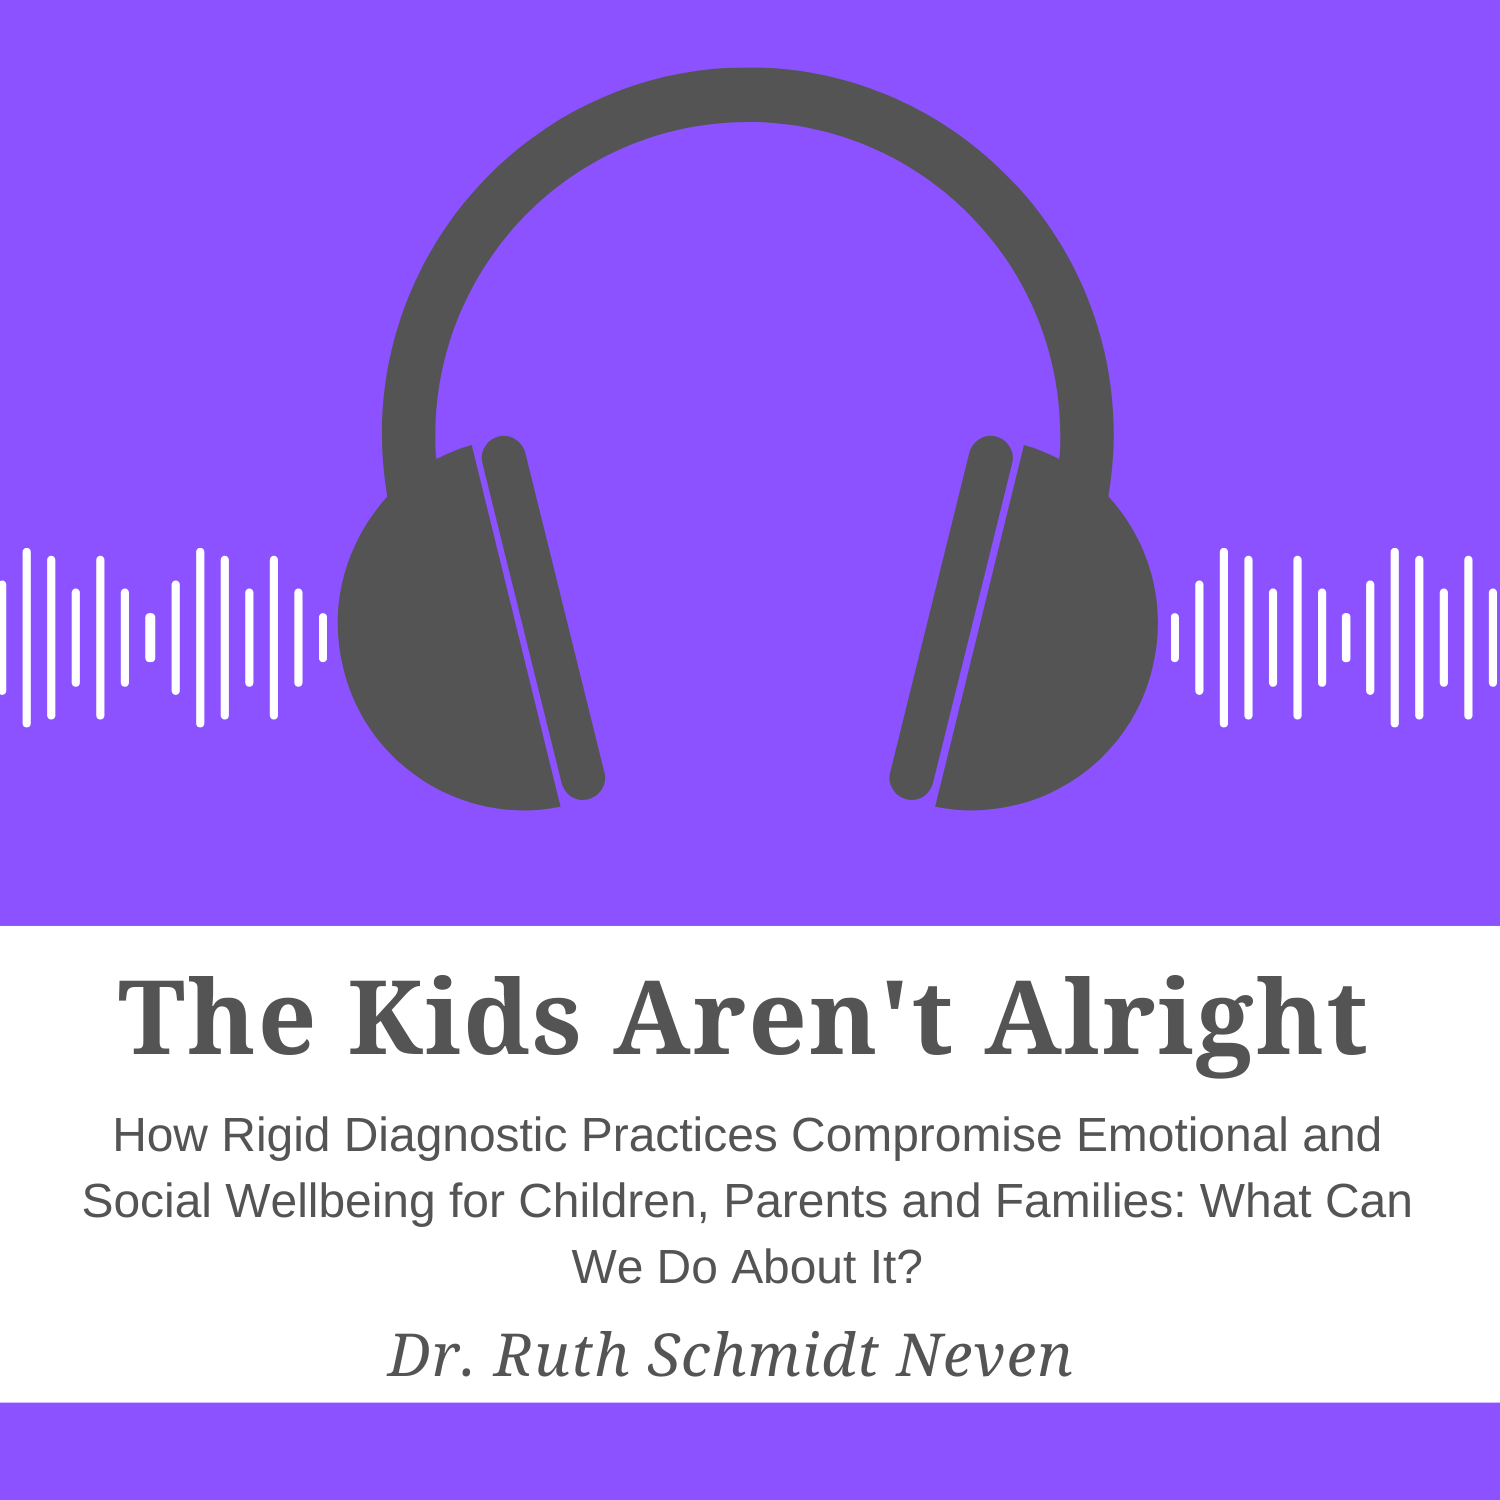 The Kids Aren't Alright: How rigid diagnostic practices compromise emotional and social wellbeing